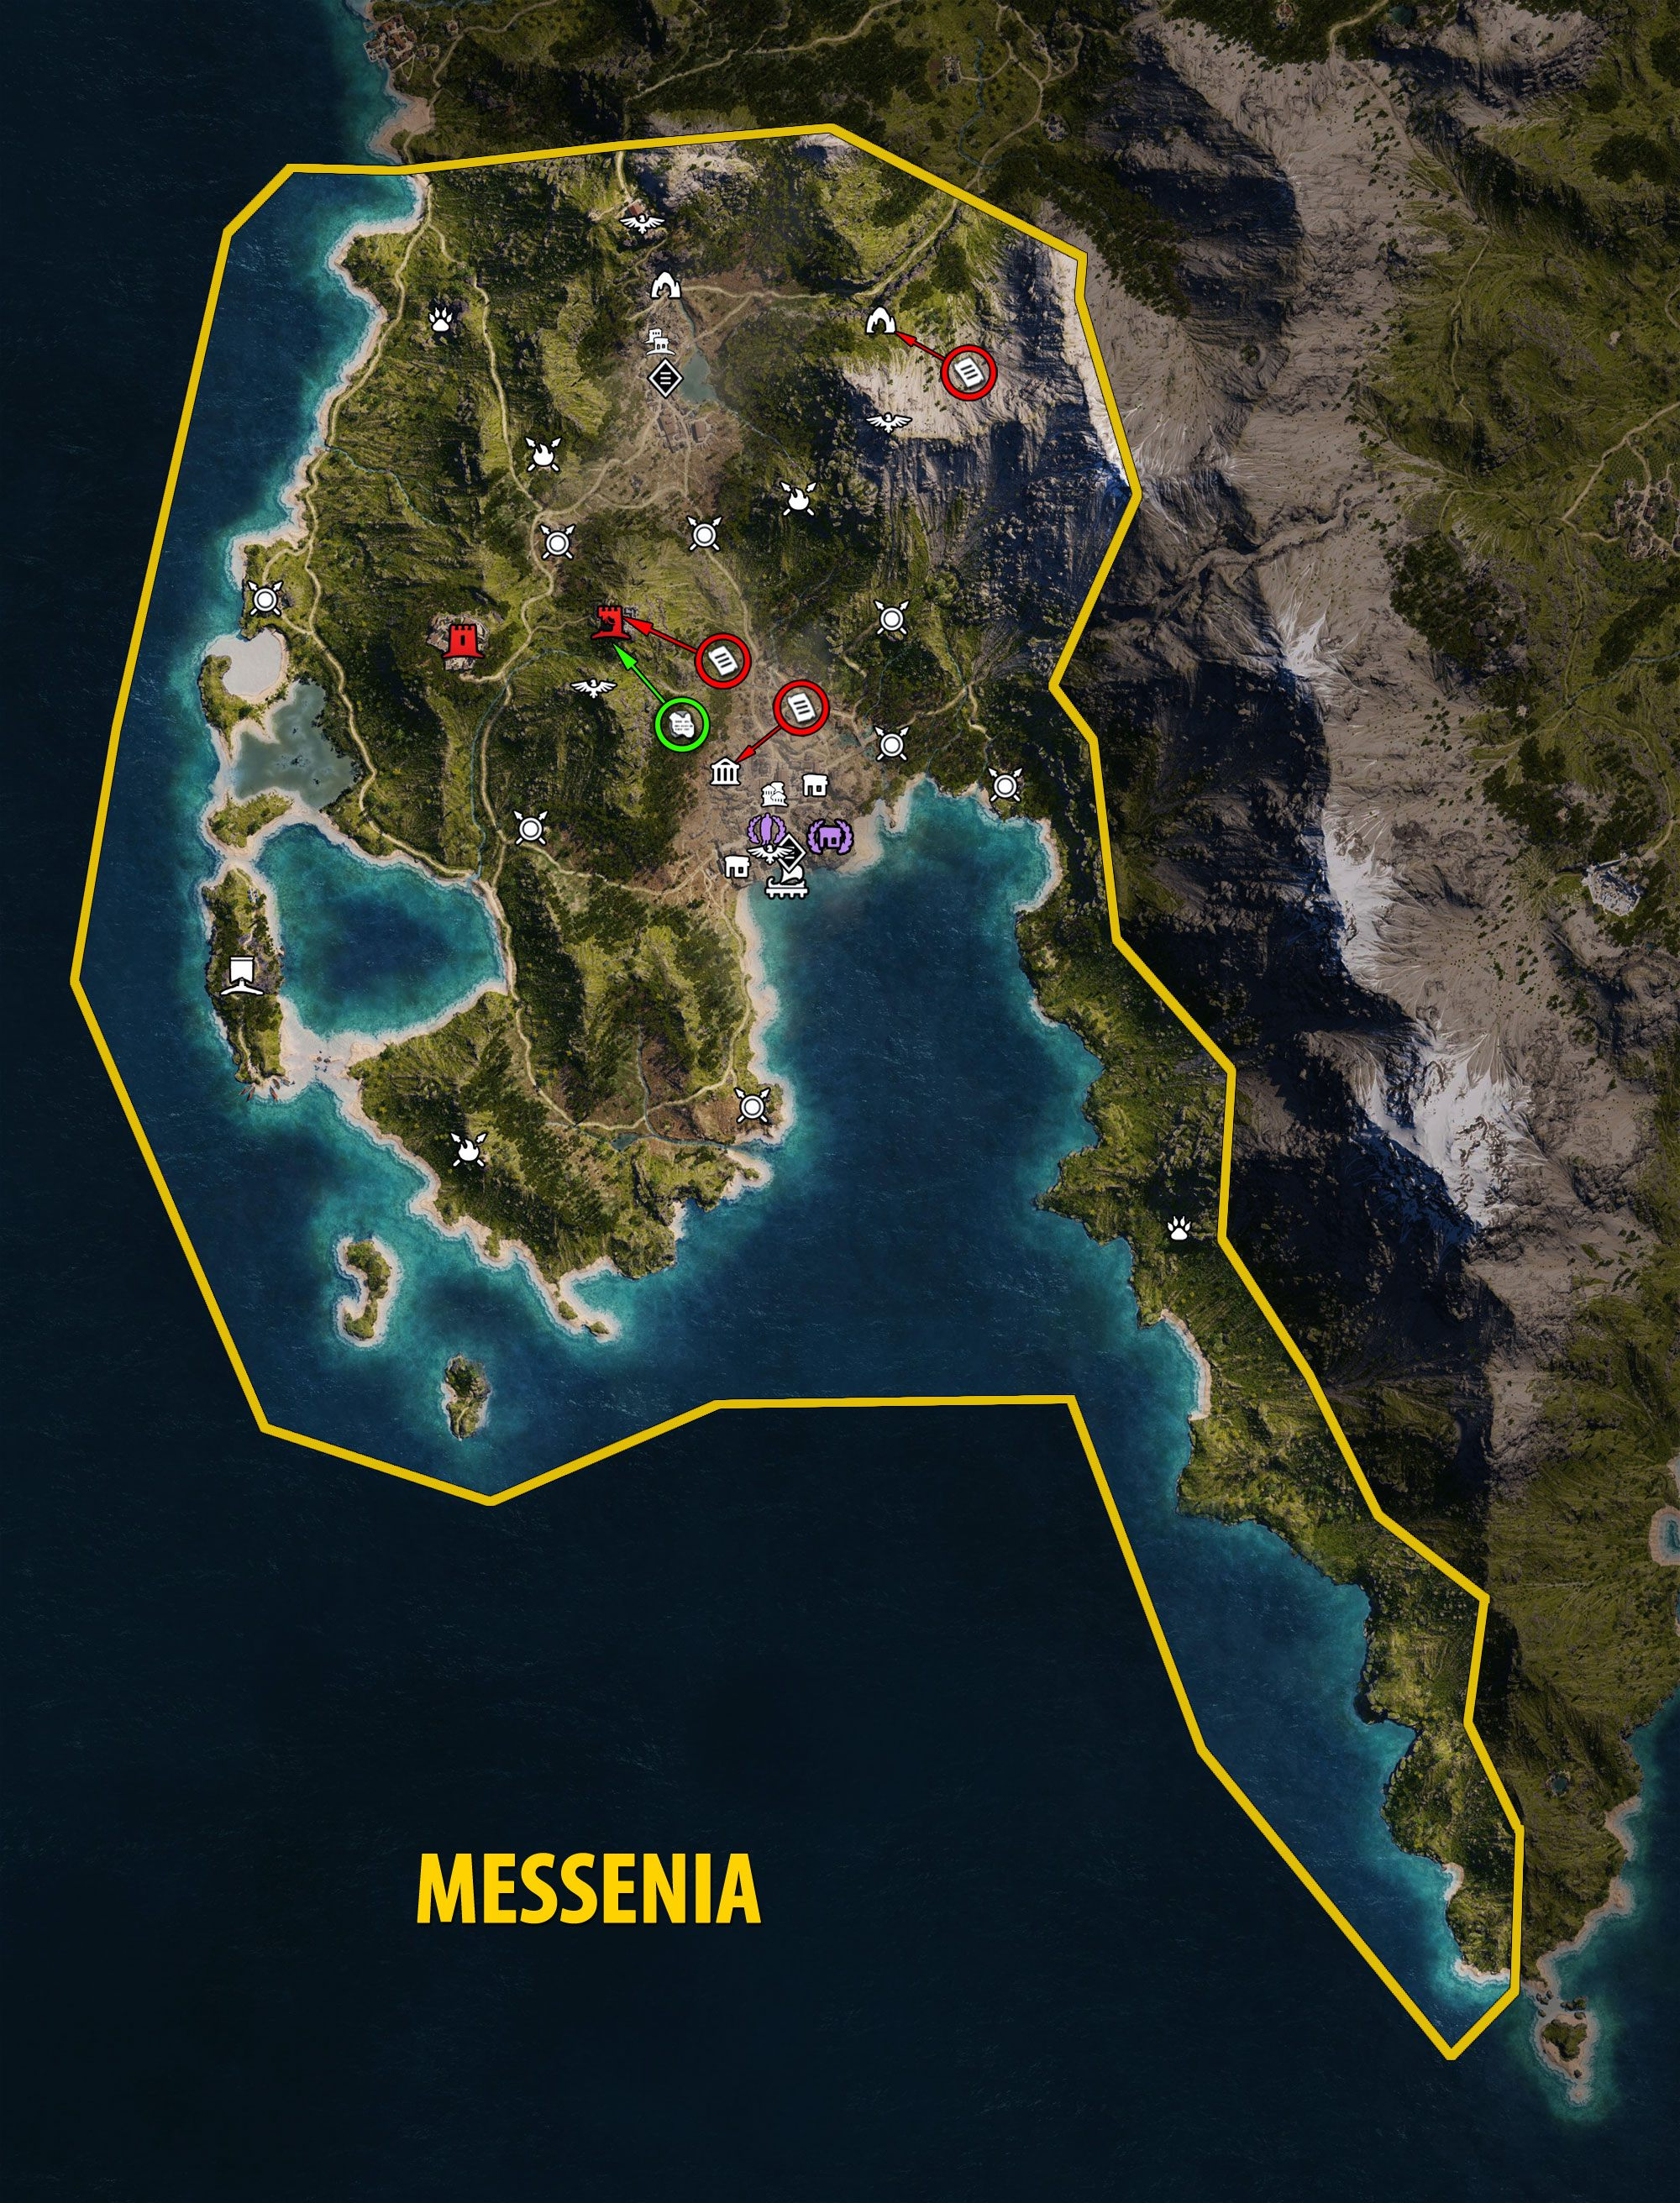 Messenia Map - Assassin's Creed Odyssey